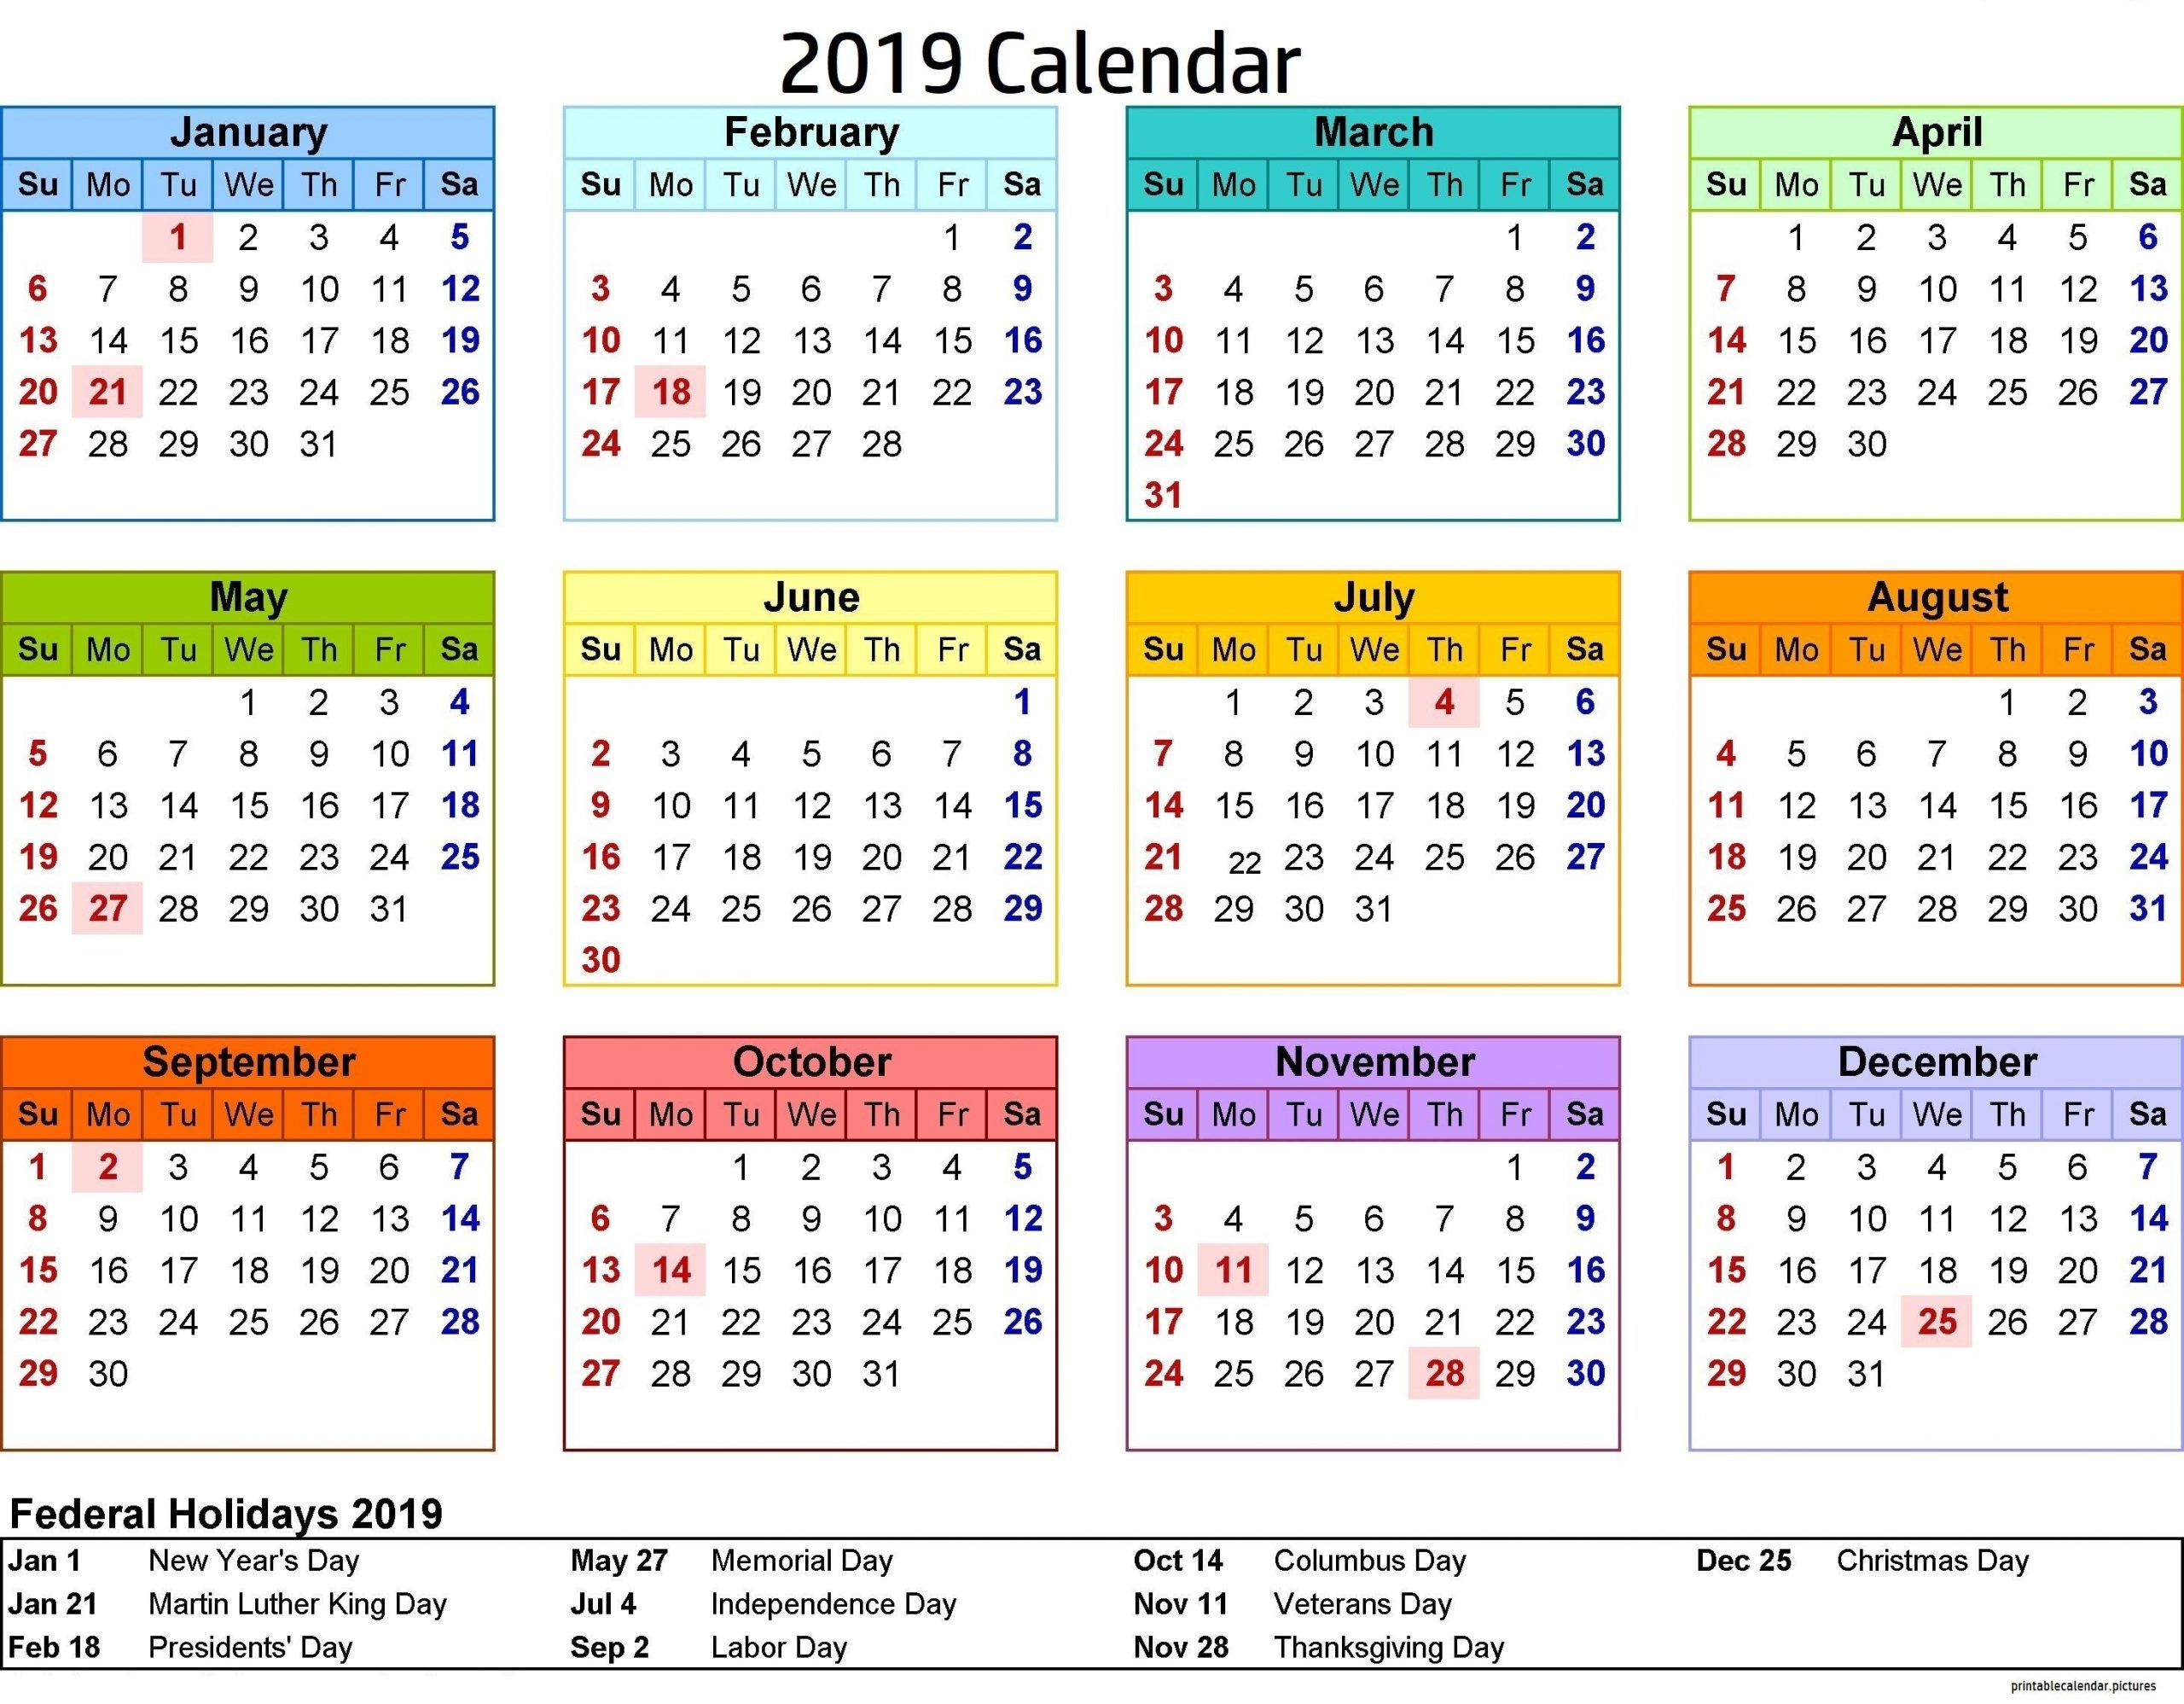 2020 Holiday Calendar Federal | Calendar Printable Free